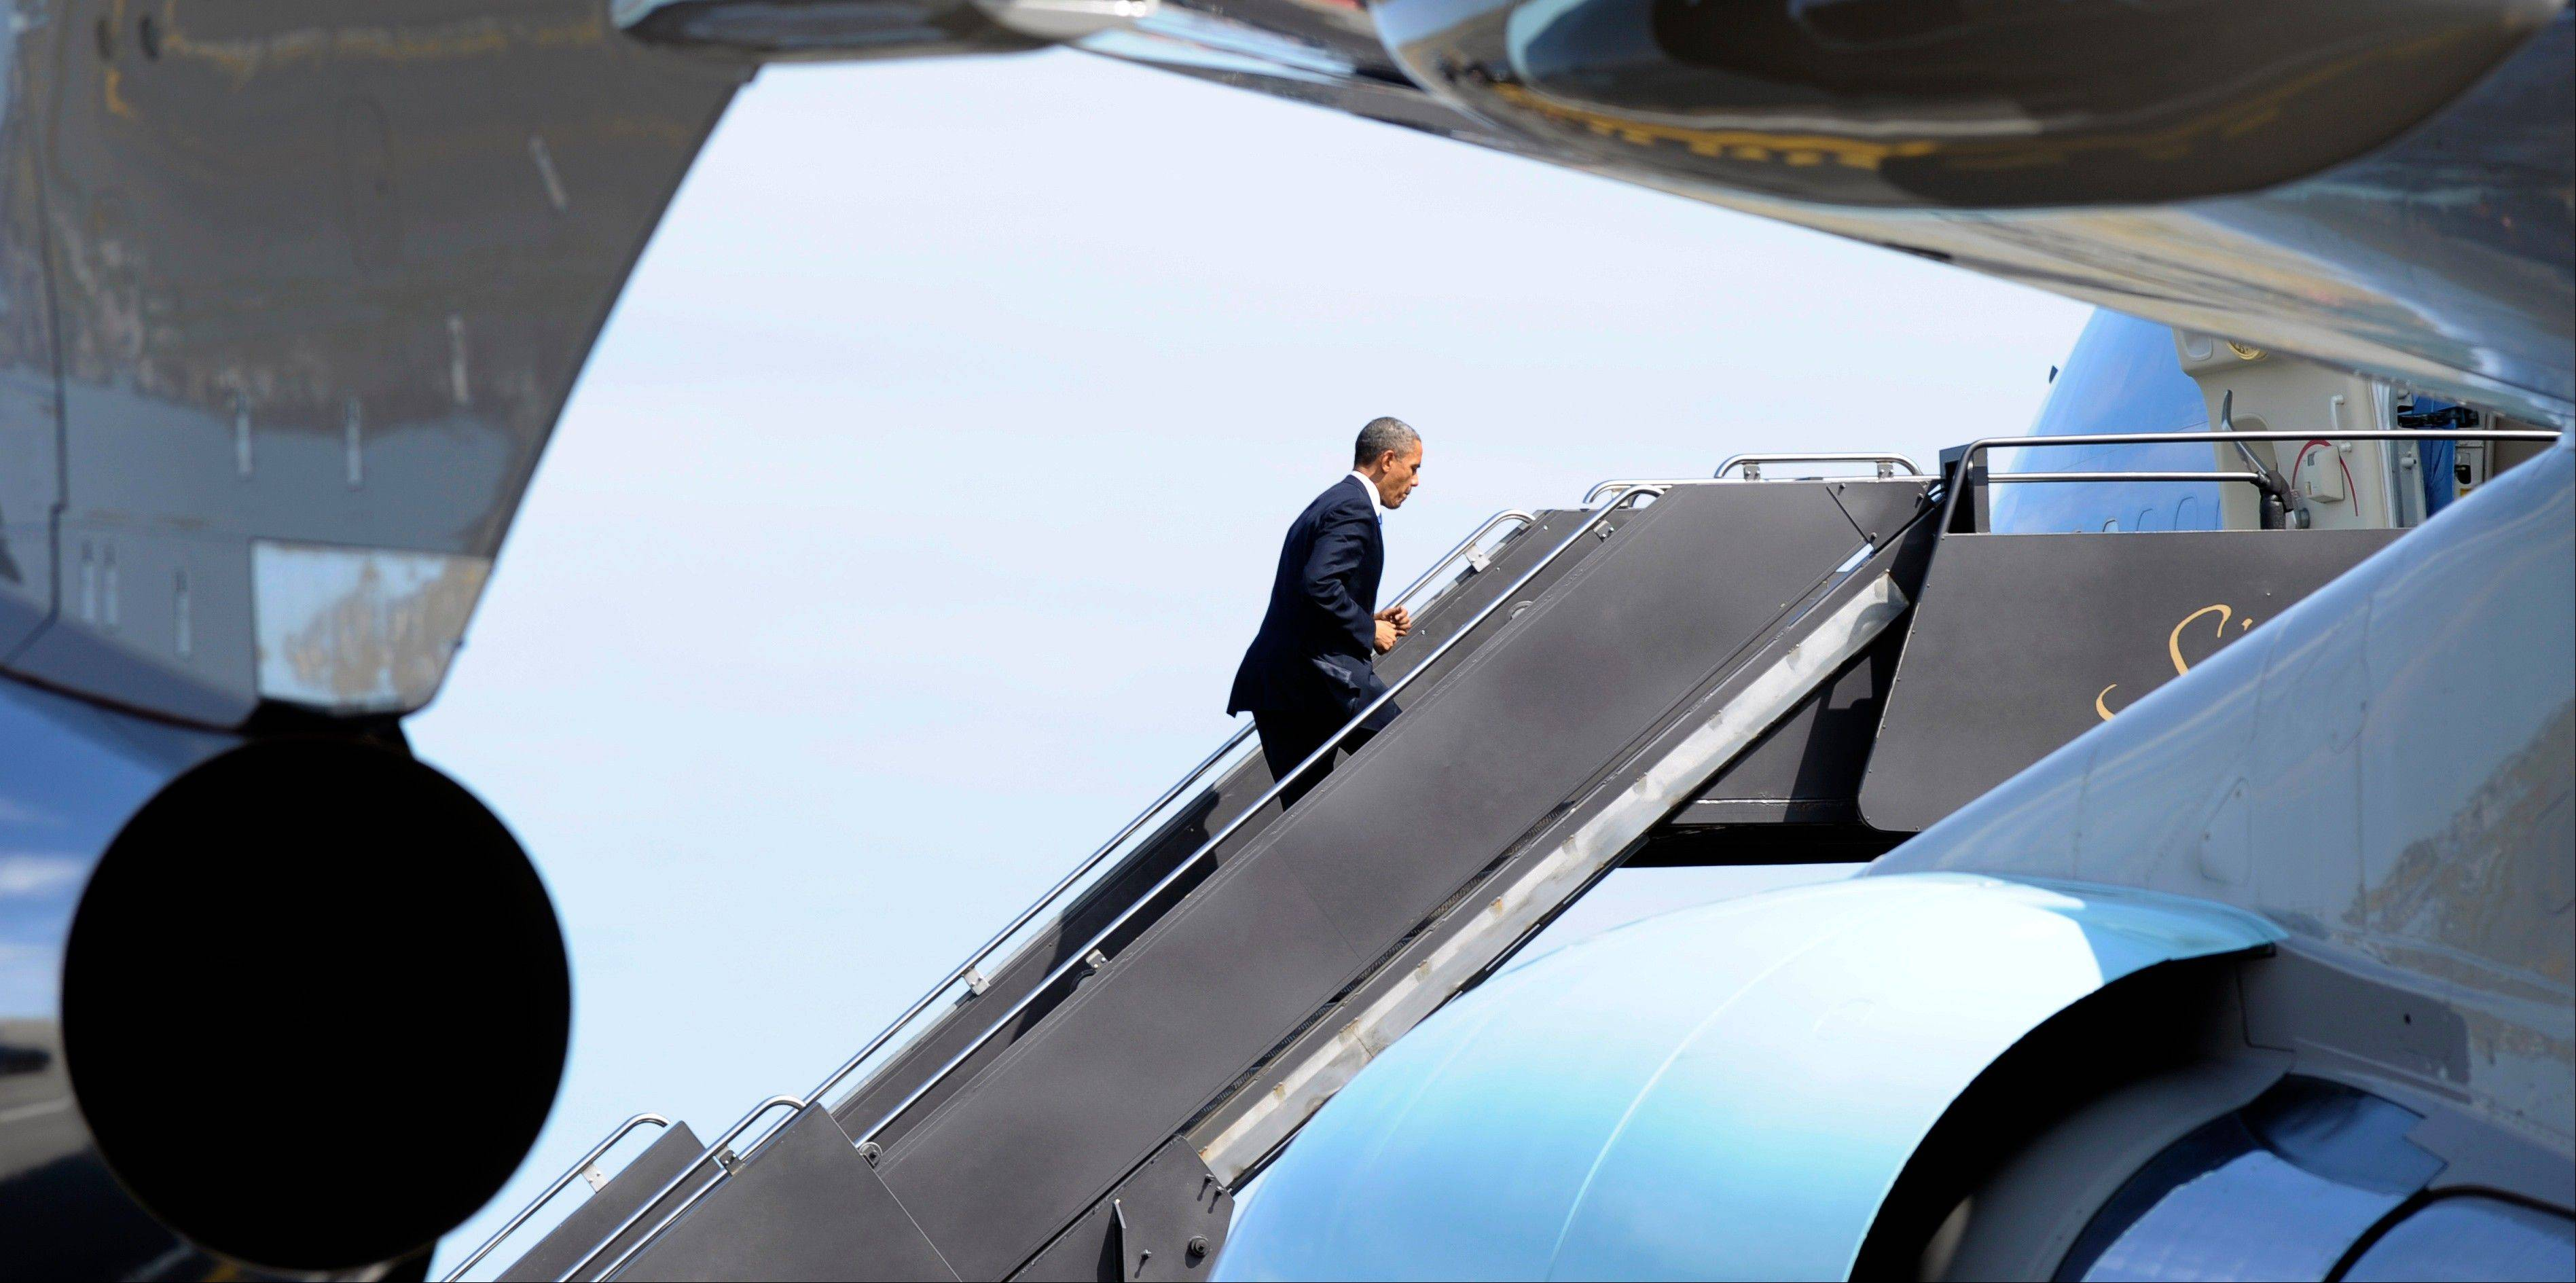 President Barack Obama walks up the steps of Air Force One Thursday at Boston�s Logan International Airport, after attending the �Healing Our City: An Interfaith Service,� dedicated to those who were gravely wounded or killed in Monday�s bombing near the finish line of the Boston Marathon.